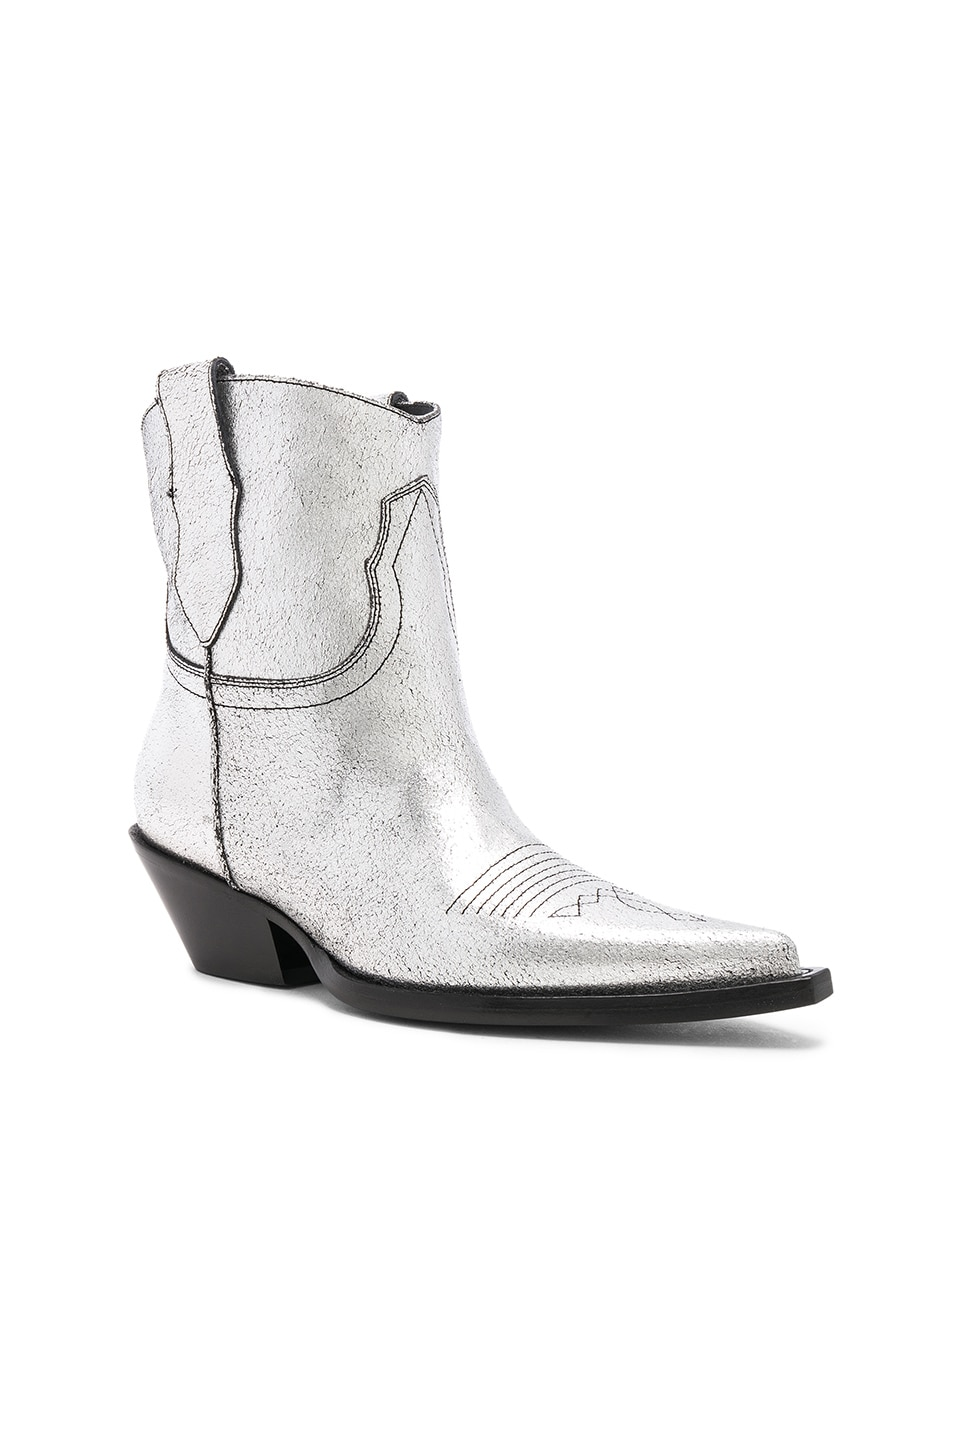 Image 2 of Maison Margiela Metallic Short Western Boots in Silver Birch & Black